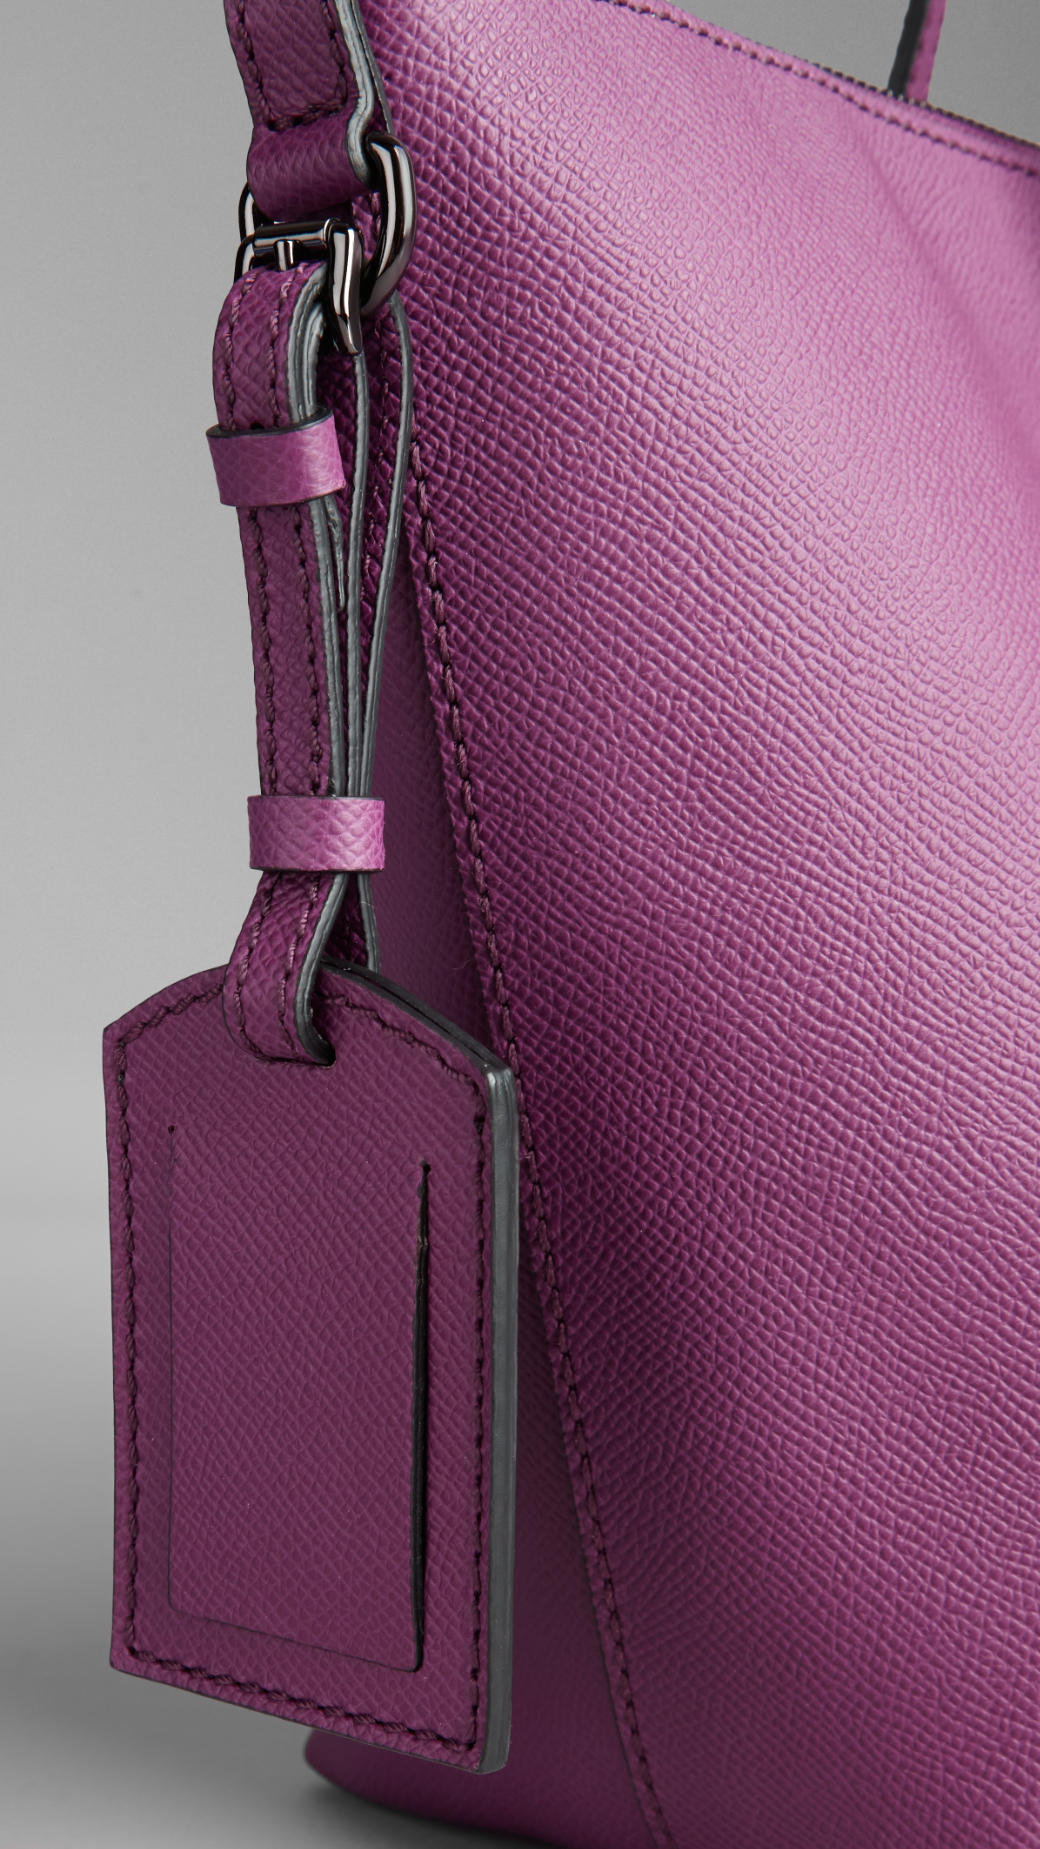 8fcf691c2b89 Lyst - Burberry Small Colour Coated London Leather Tote Bag in Purple